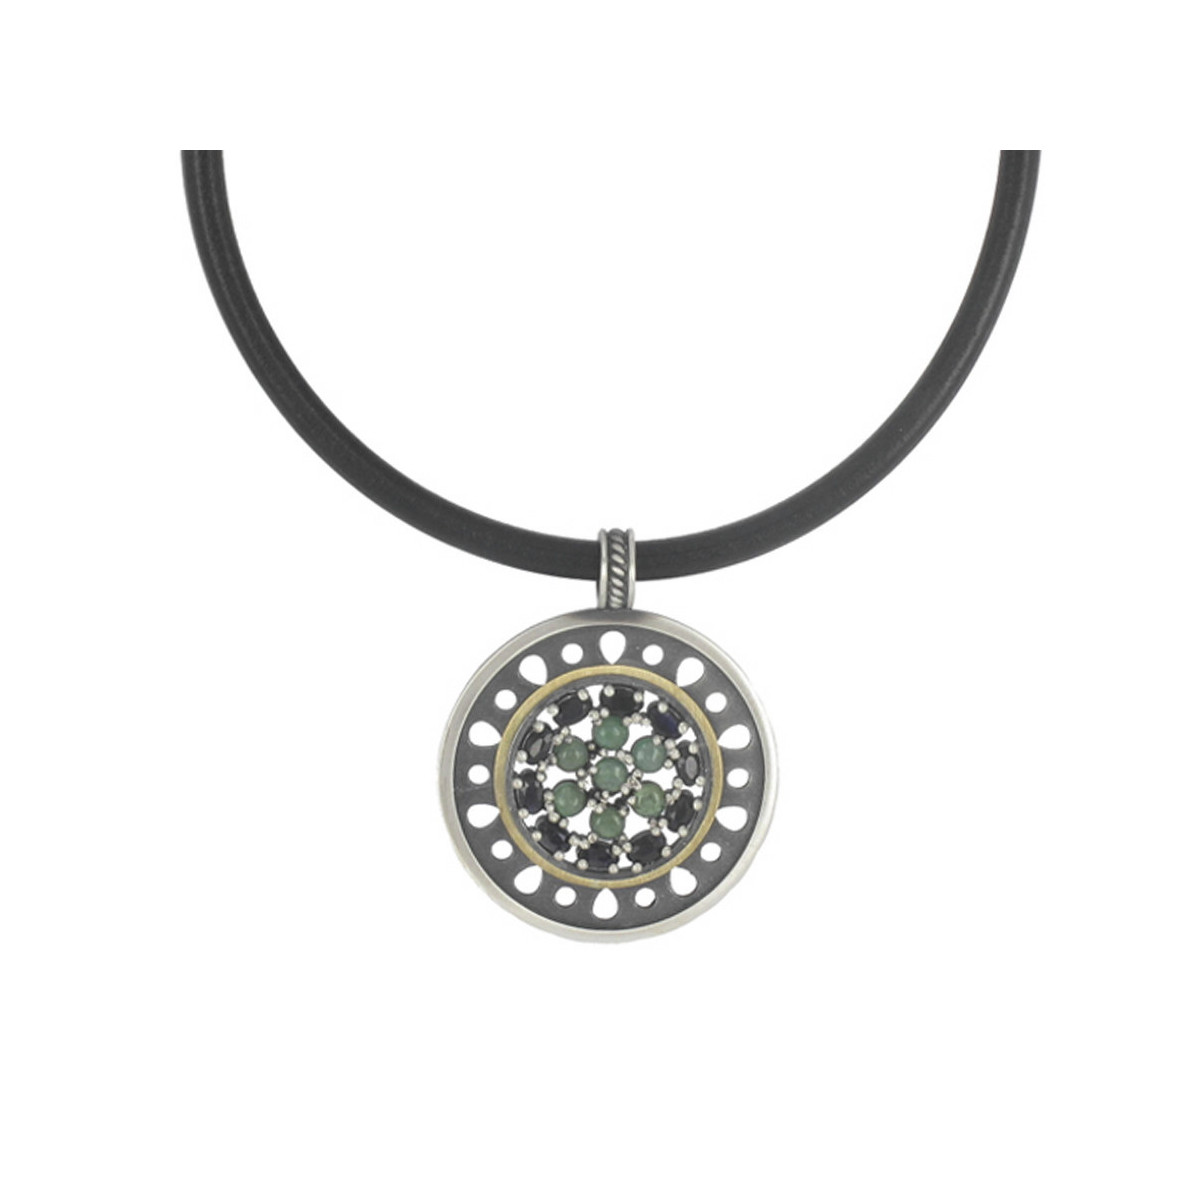 LEATHER SILVER GOLD NECKLACE